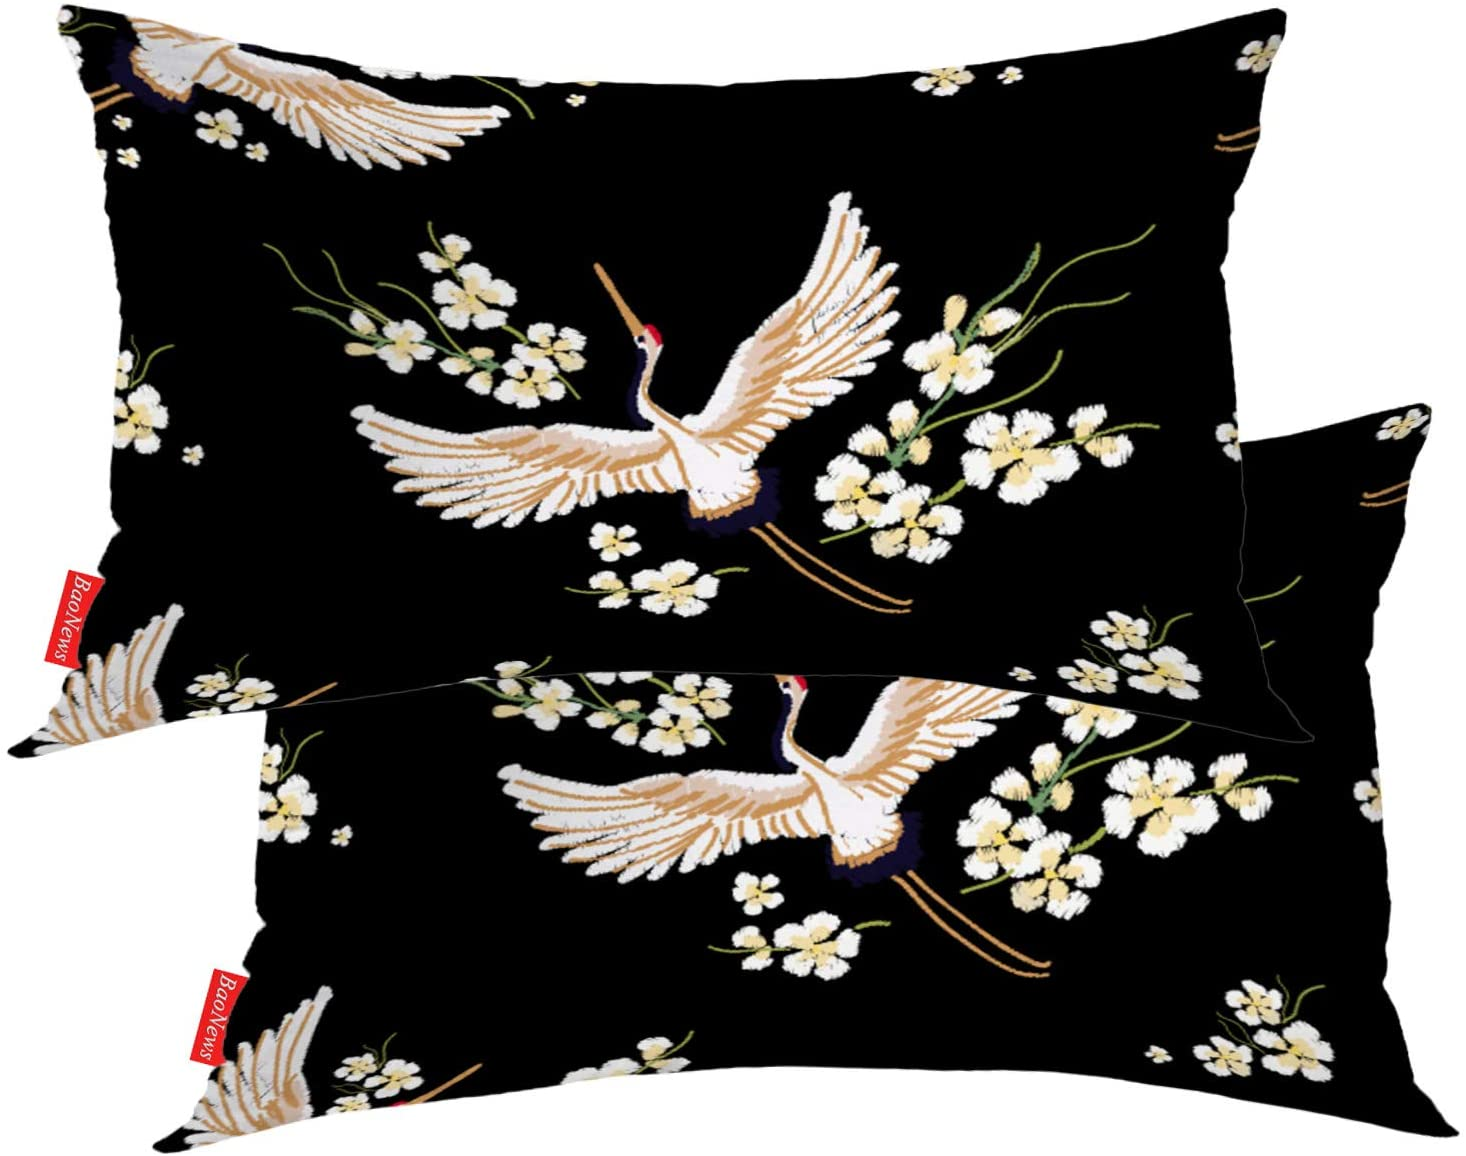 BaoNews Colorful Pillow Covers, Oriental Tropical Leafs Flowers On Black Lumbar 12 x 20 Inches Decorative Throw Pillow Covers Cotton Cushion for Sofa Bedroom Car, White 04, Set of 2